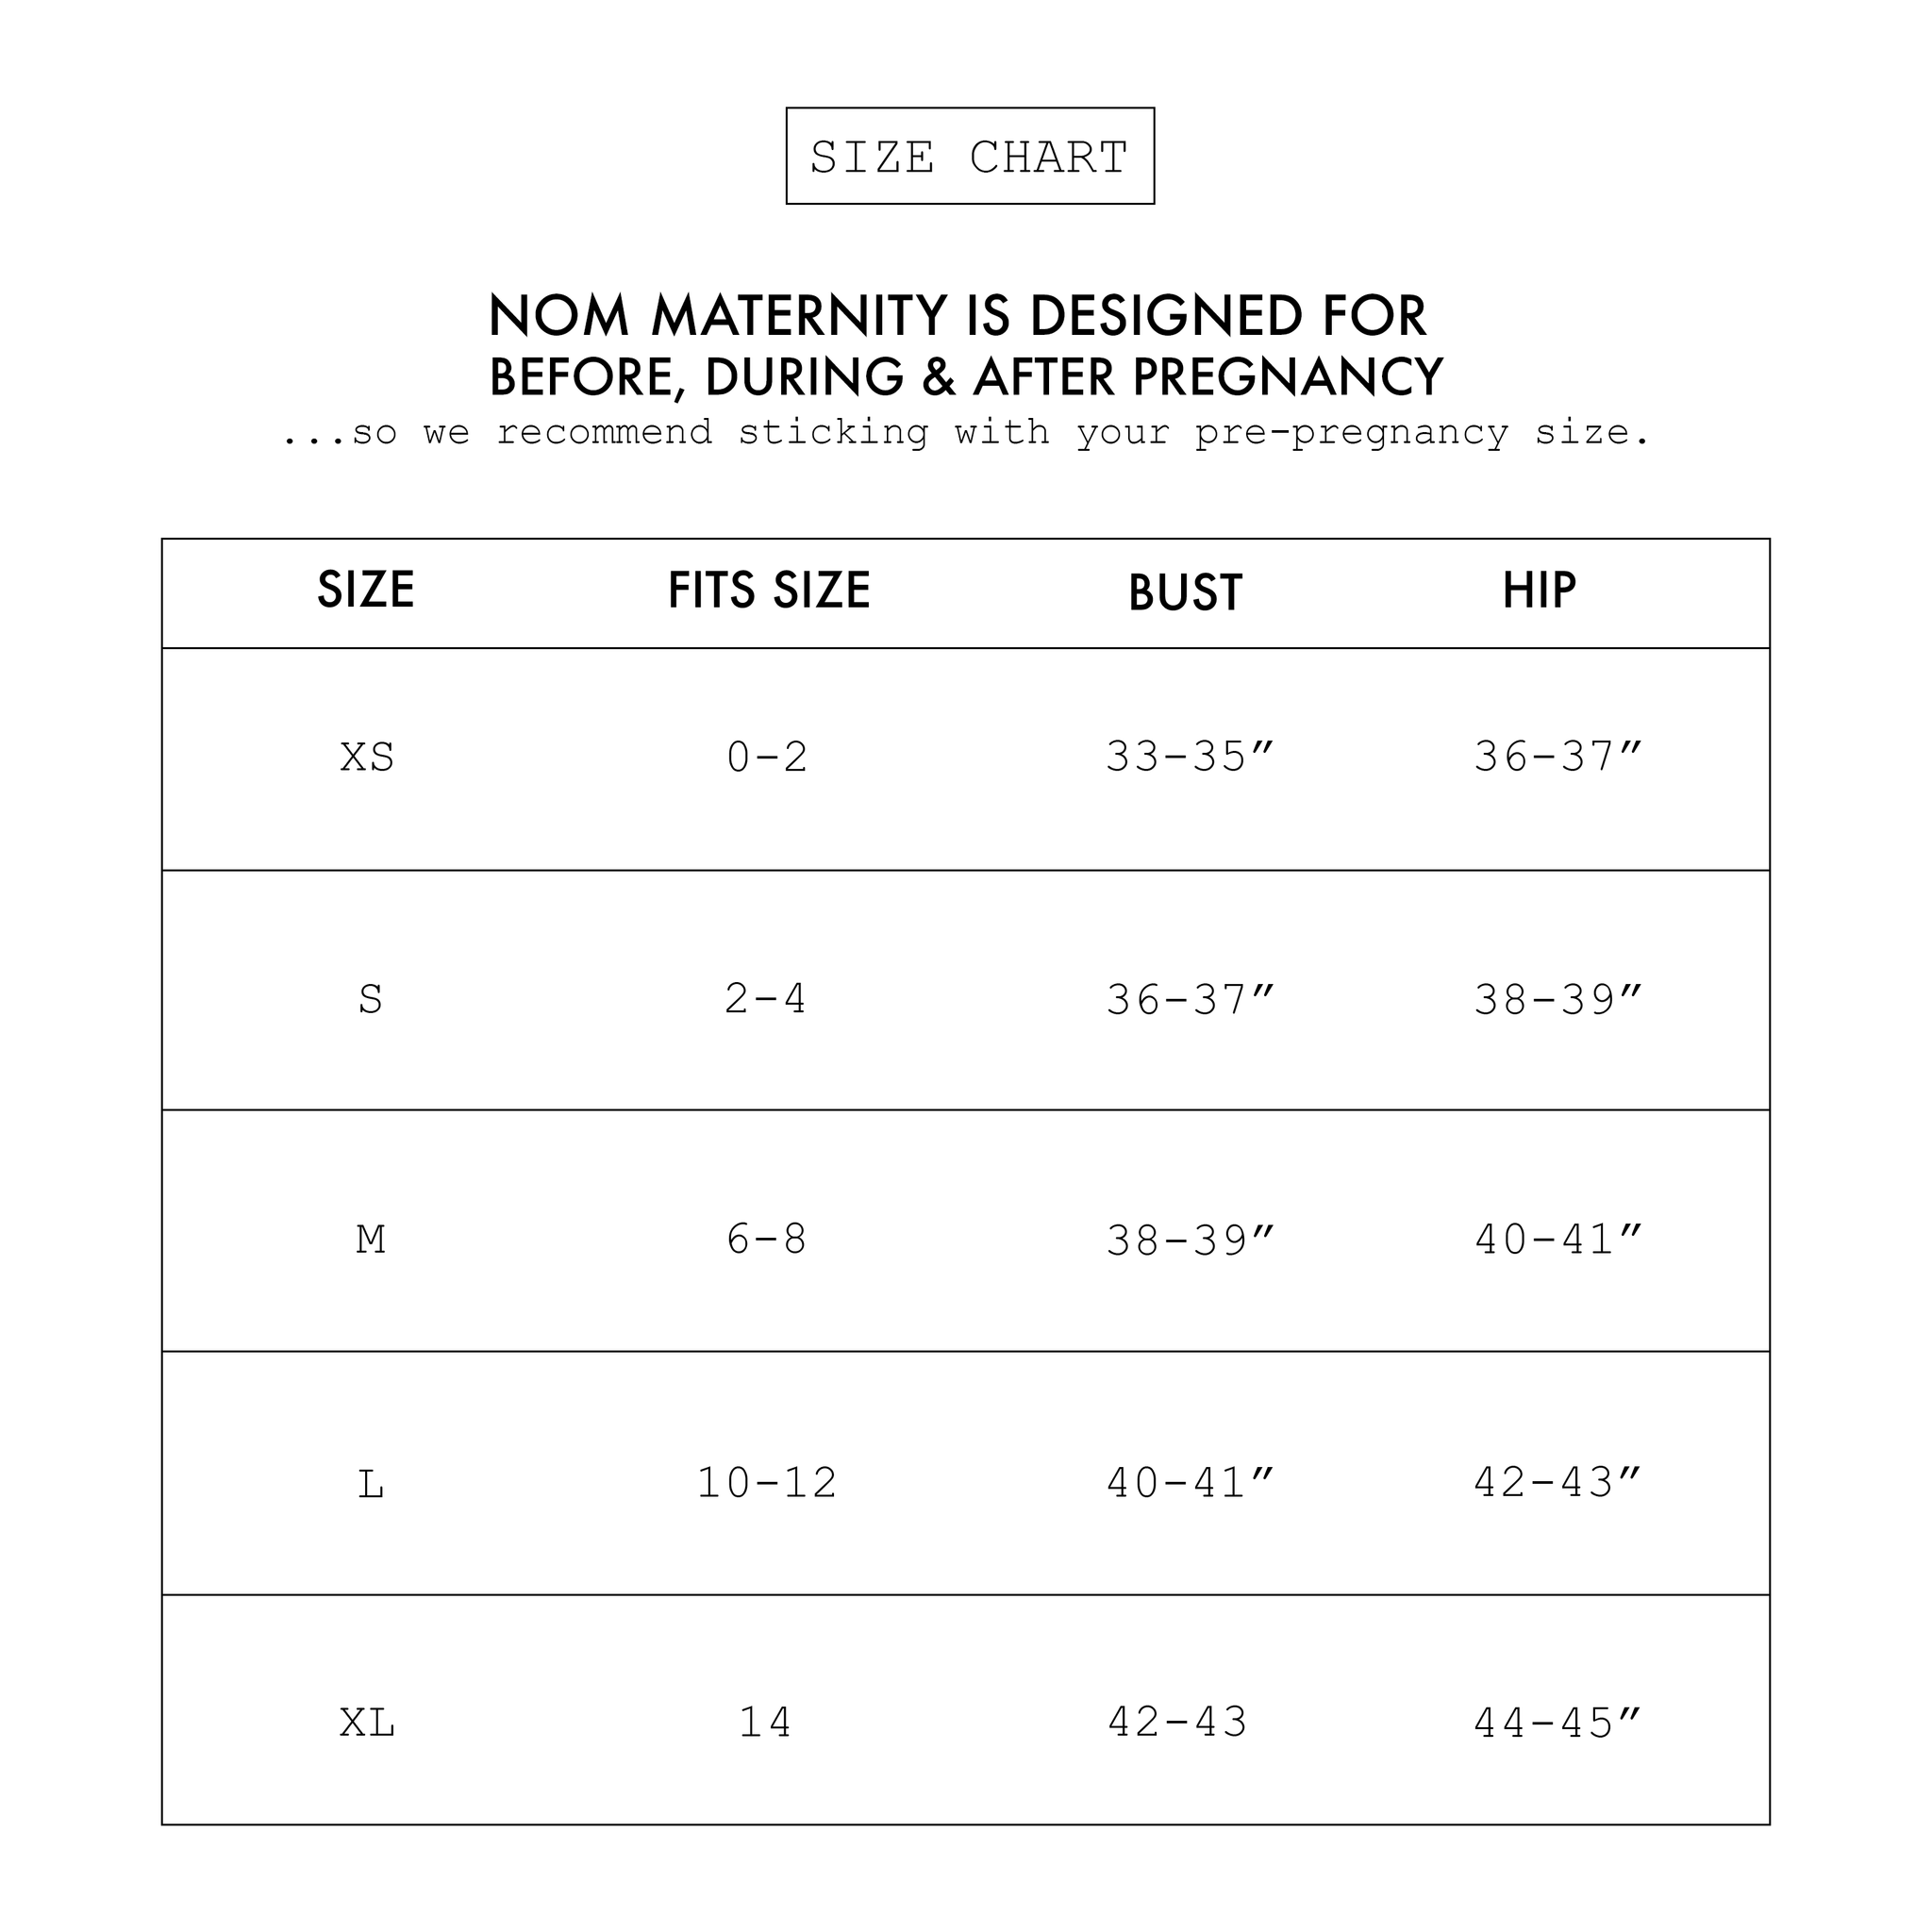 Nom Maternity Clothing Brand Size Guide